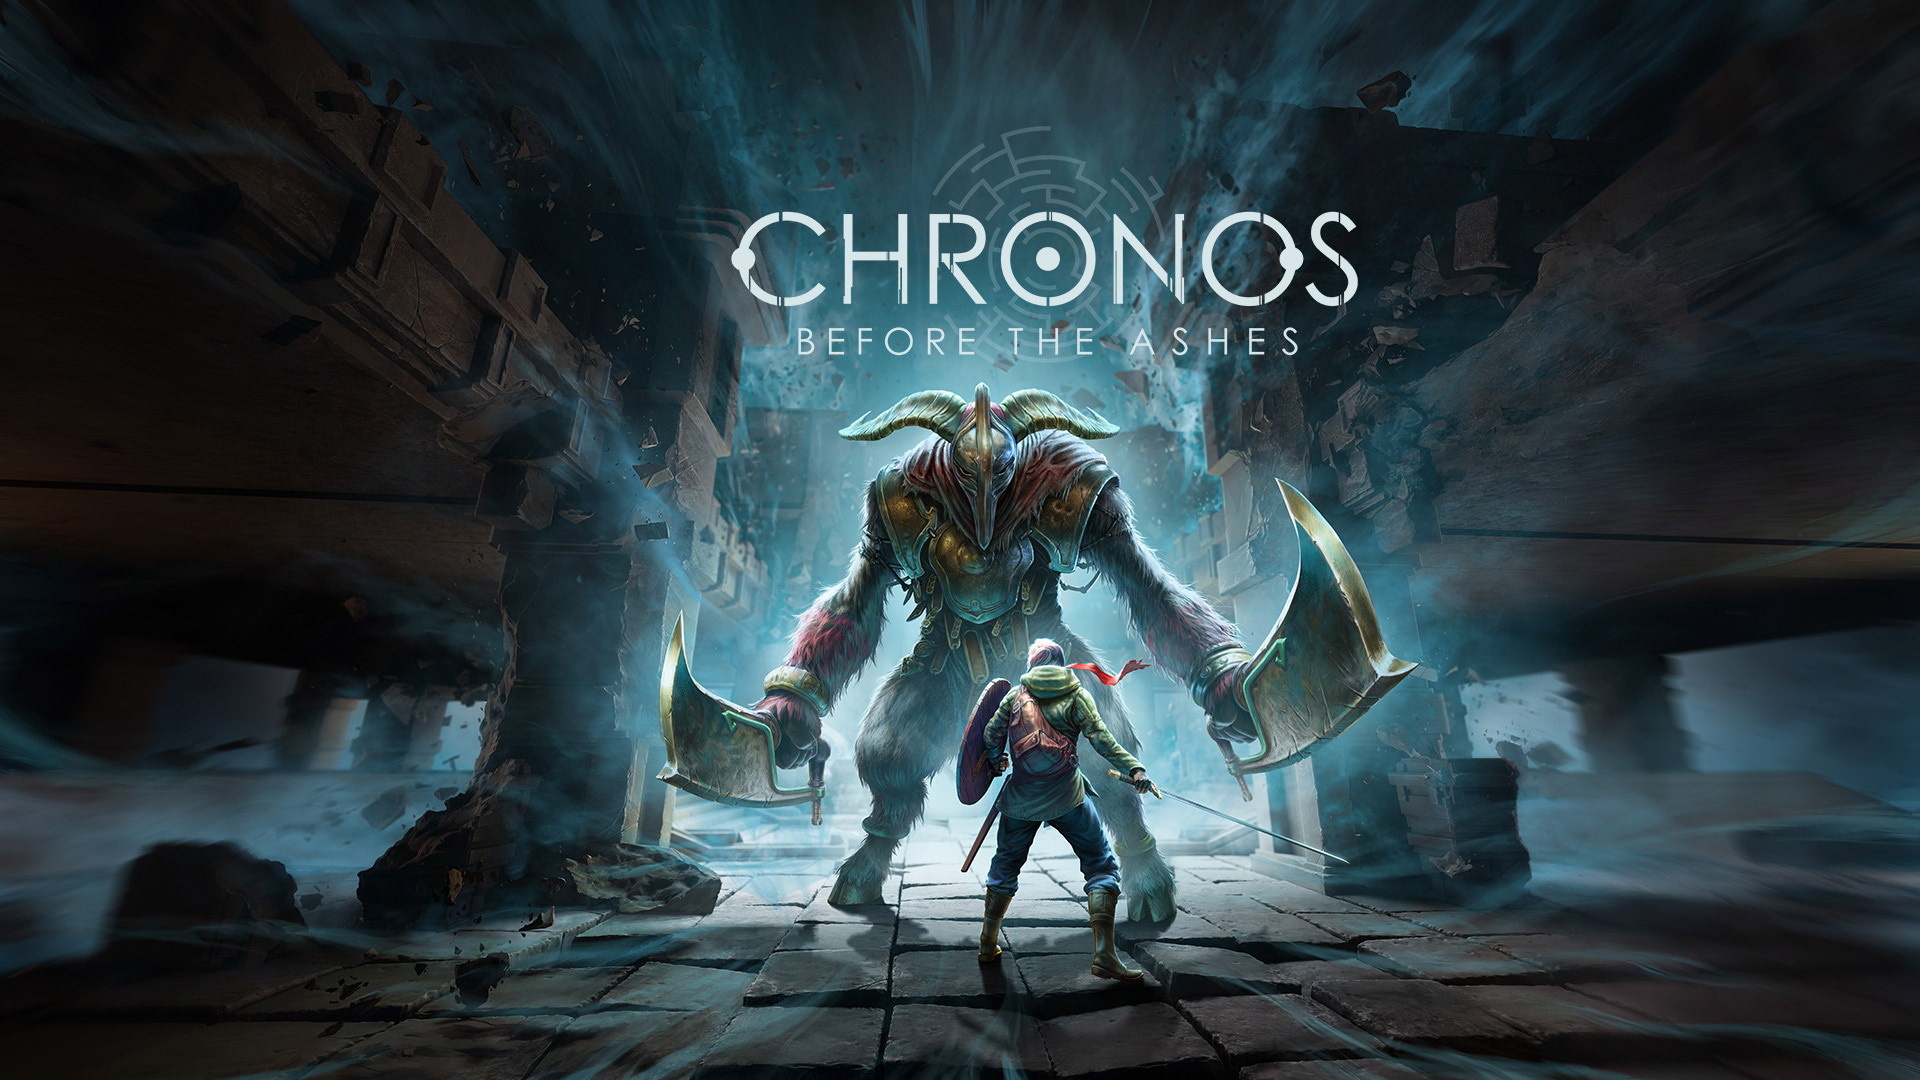 Free Chronos: Before the Ashes Wallpaper in 1920x1080